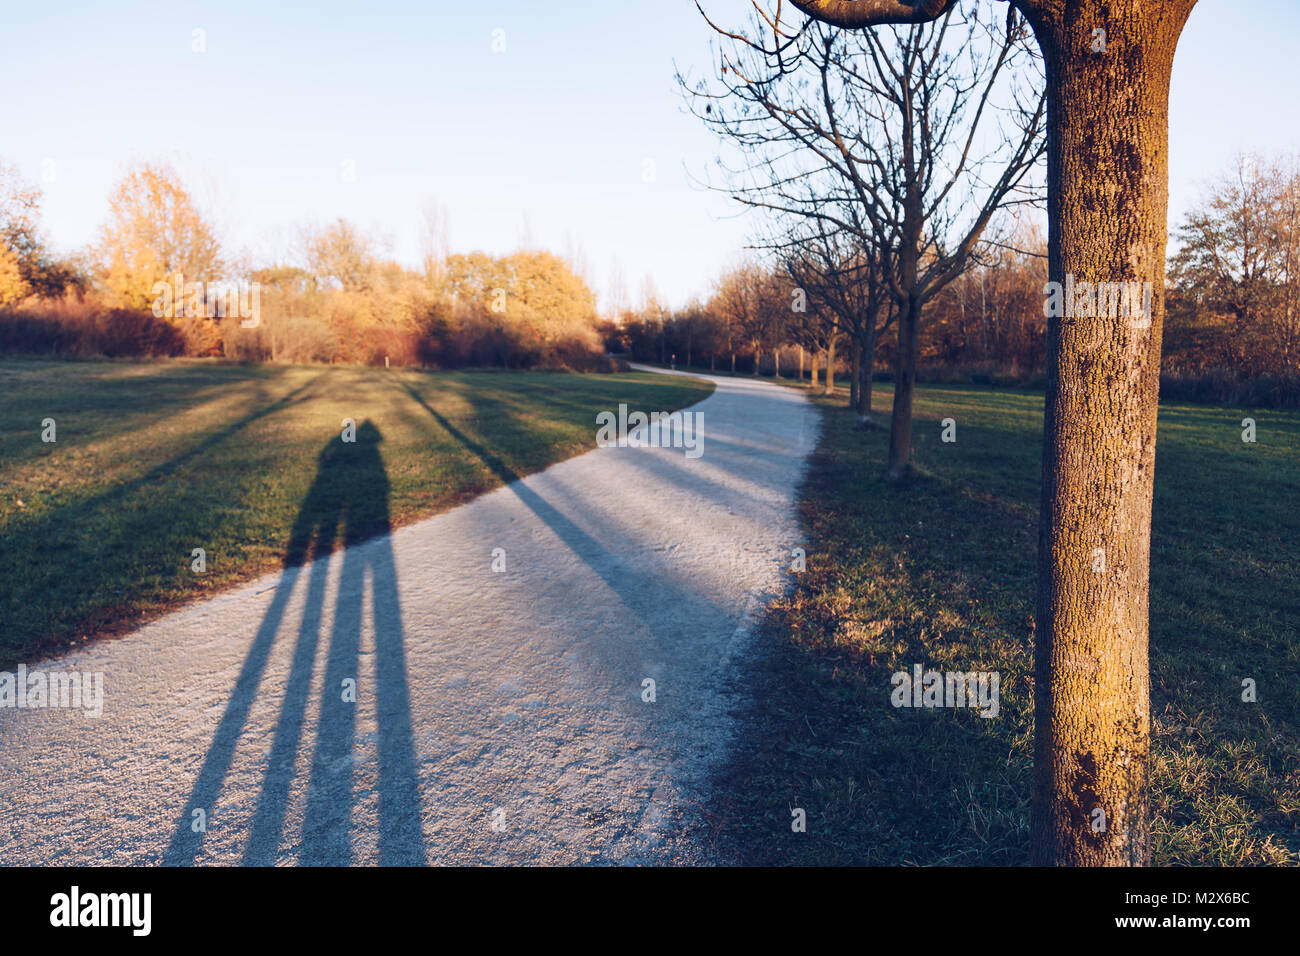 Shadow silhouette on grass - park. - Stock Image